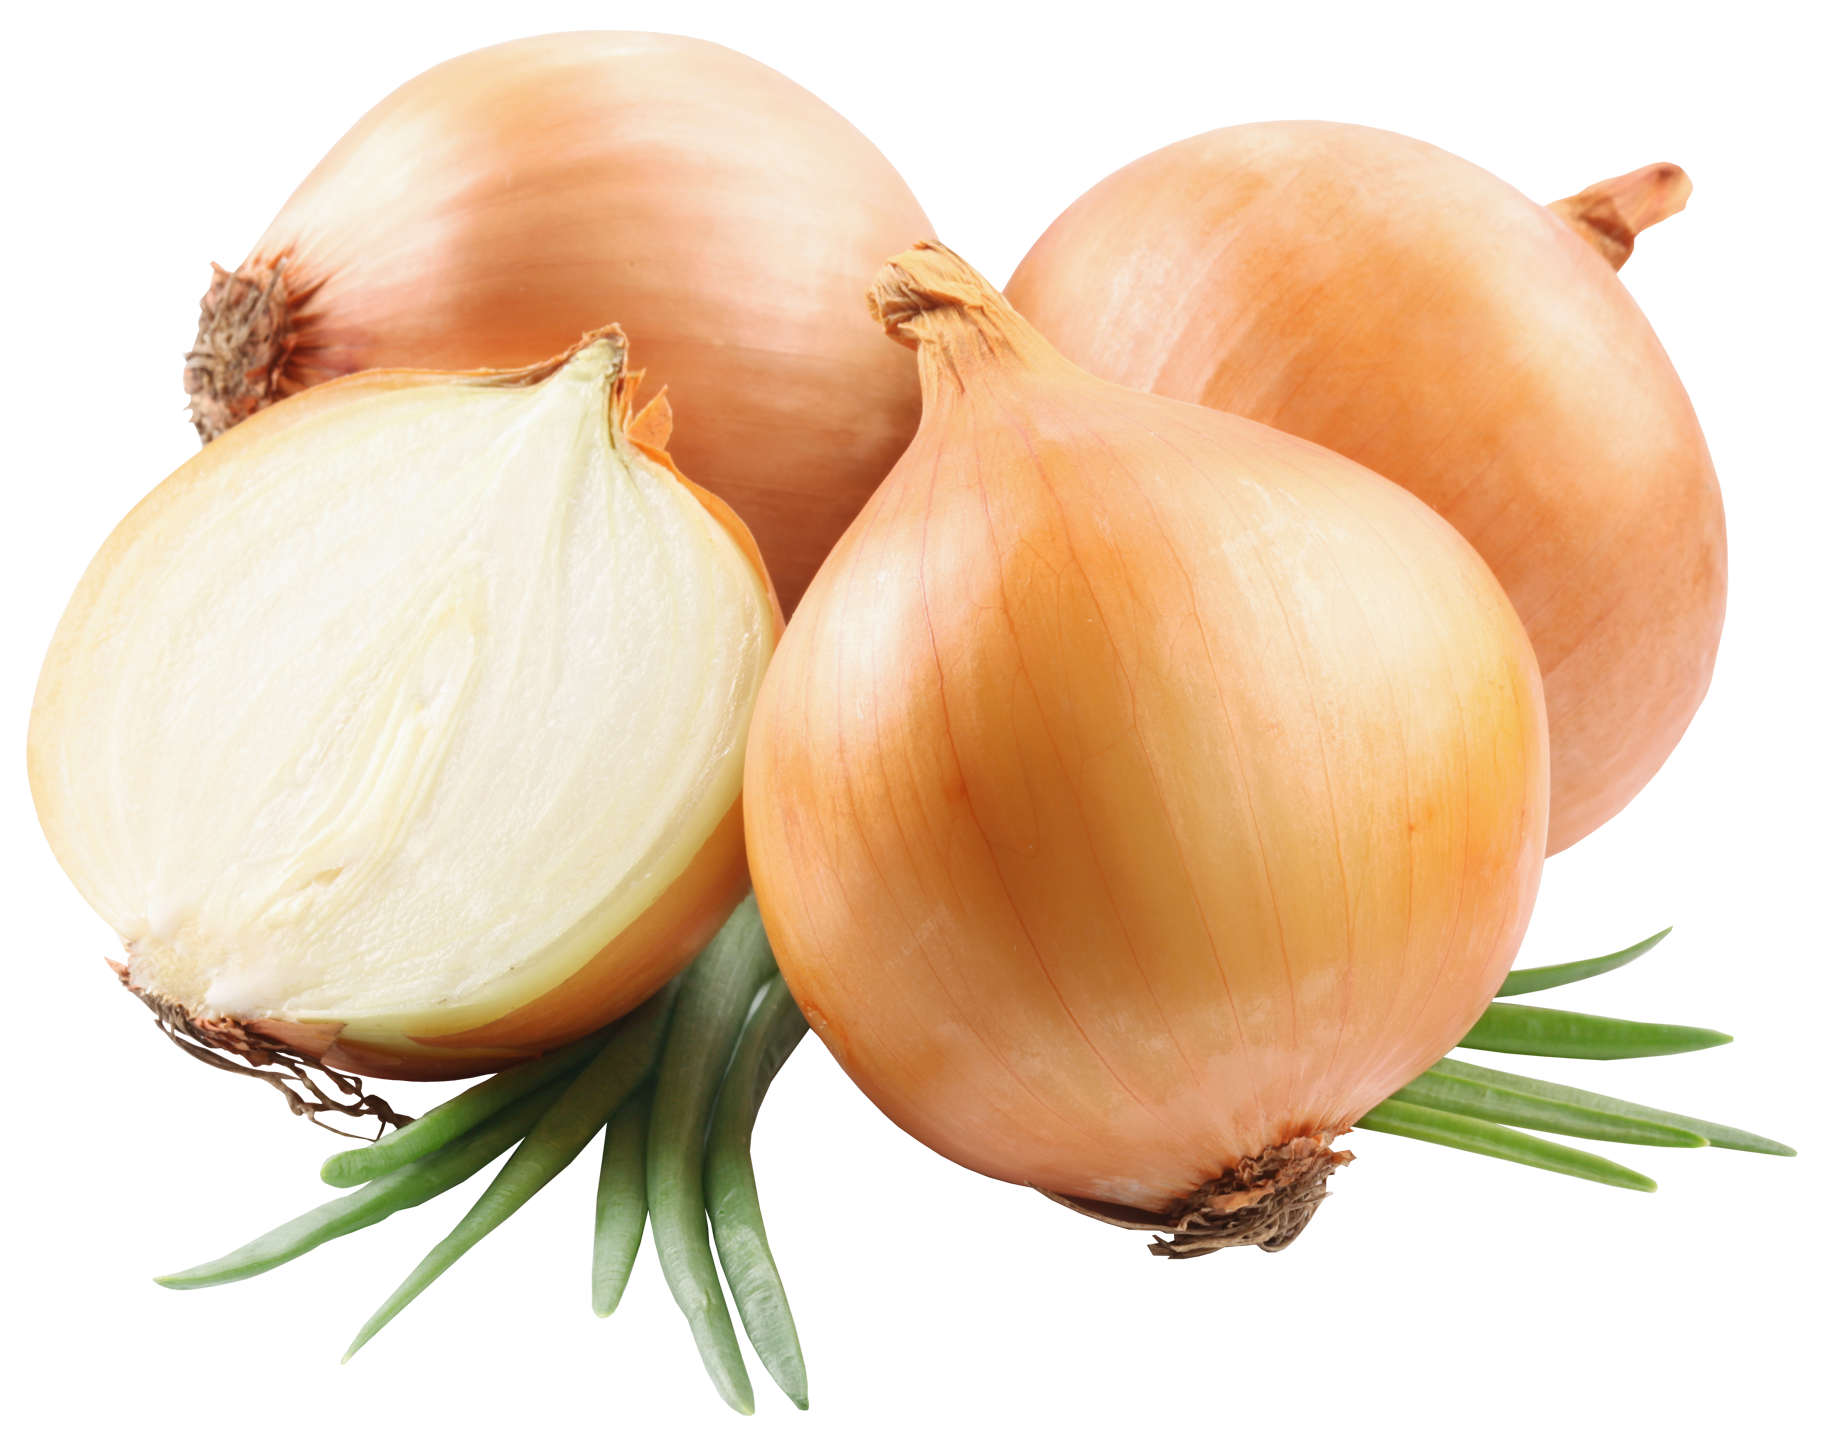 Garlic clipart shallot. Onions png picutre gallery